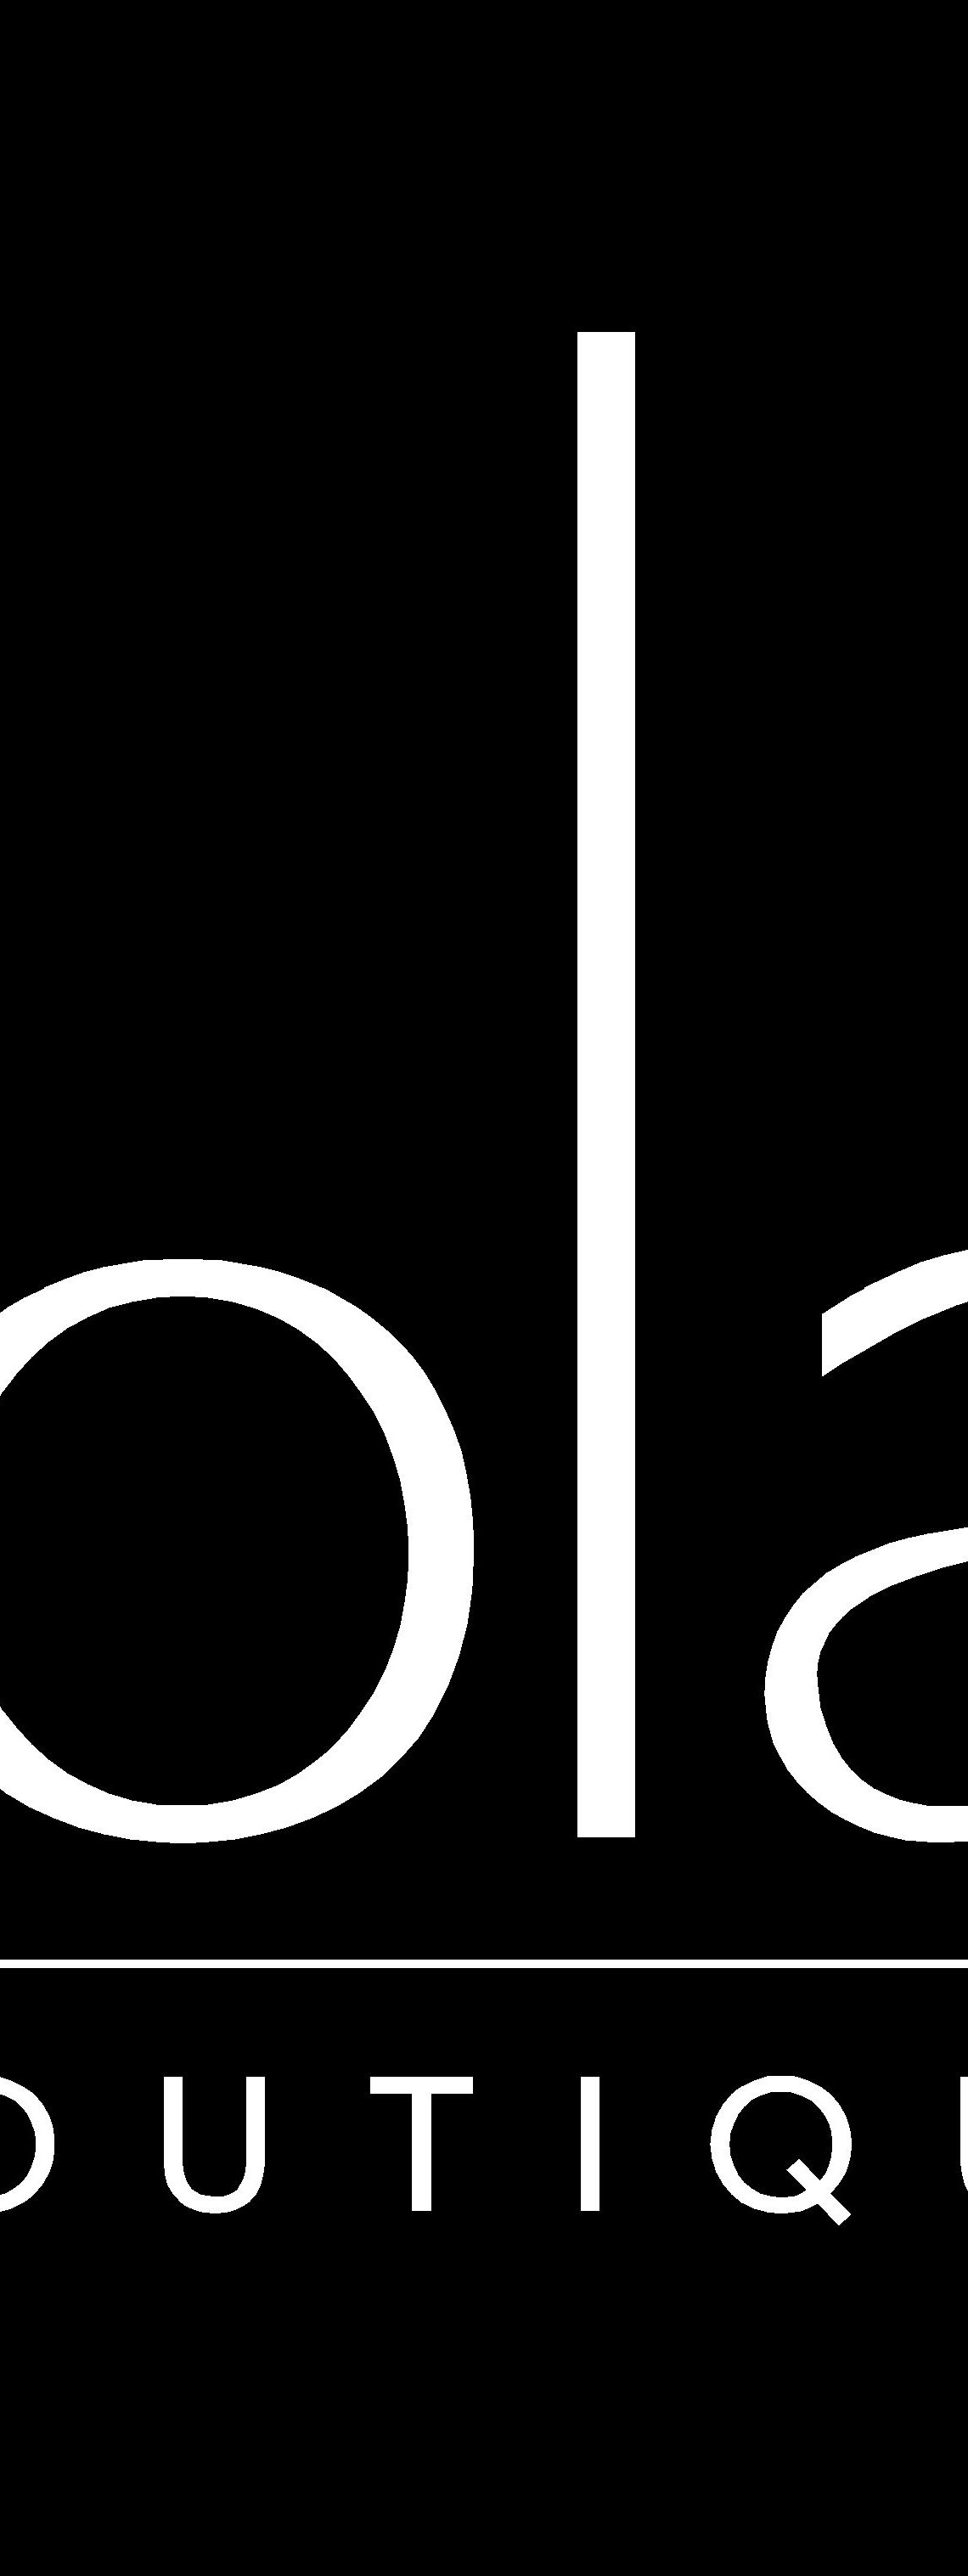 New Ownership for Fayetteville's Lola Boutique